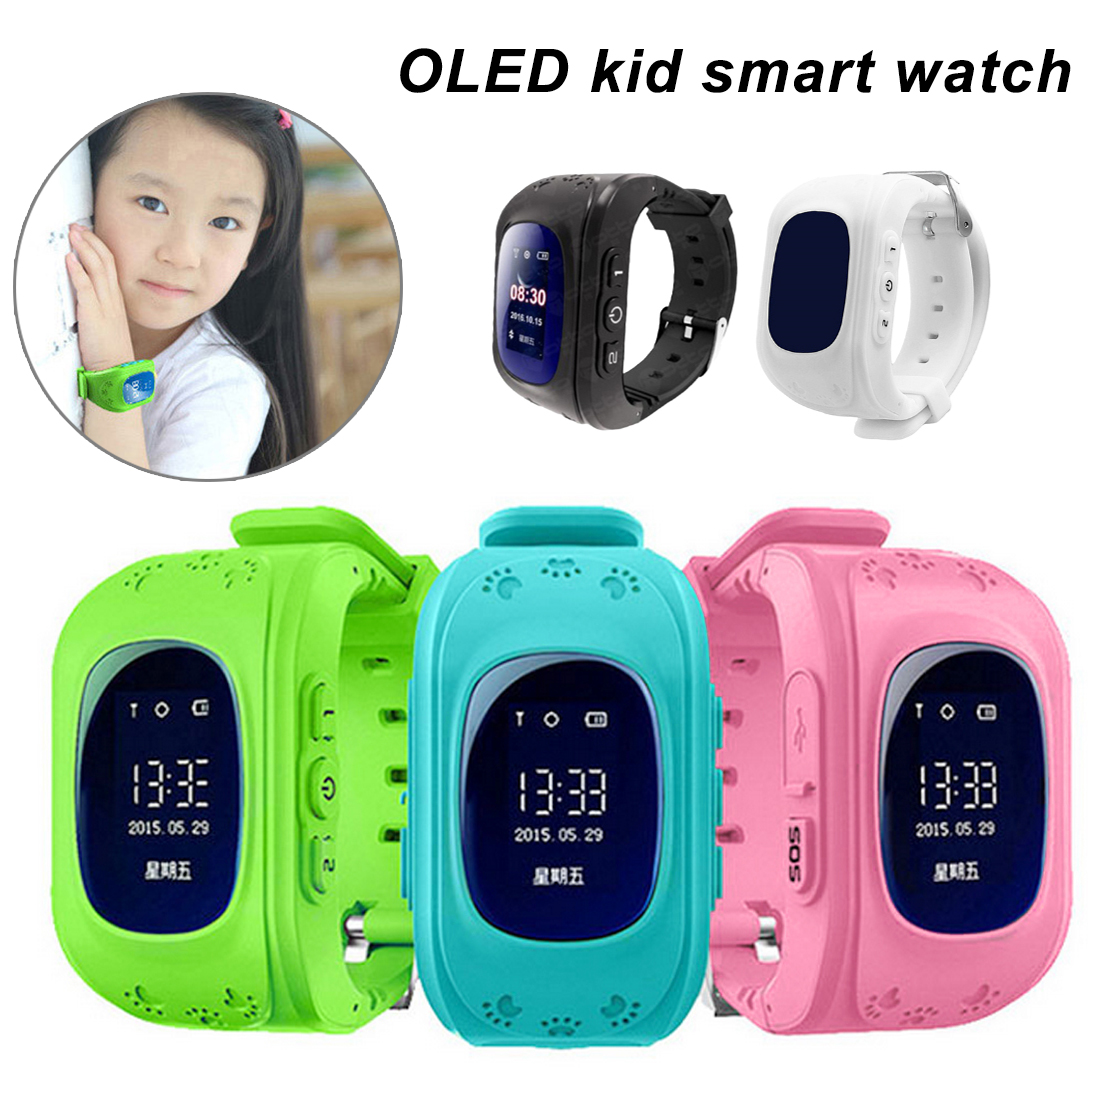 New Q50 OLED Screen GPS Smart Kid Watch SOS Call Location Finder Locator Tracker for Childreb Anti Lost Monitor Baby Wristwatch